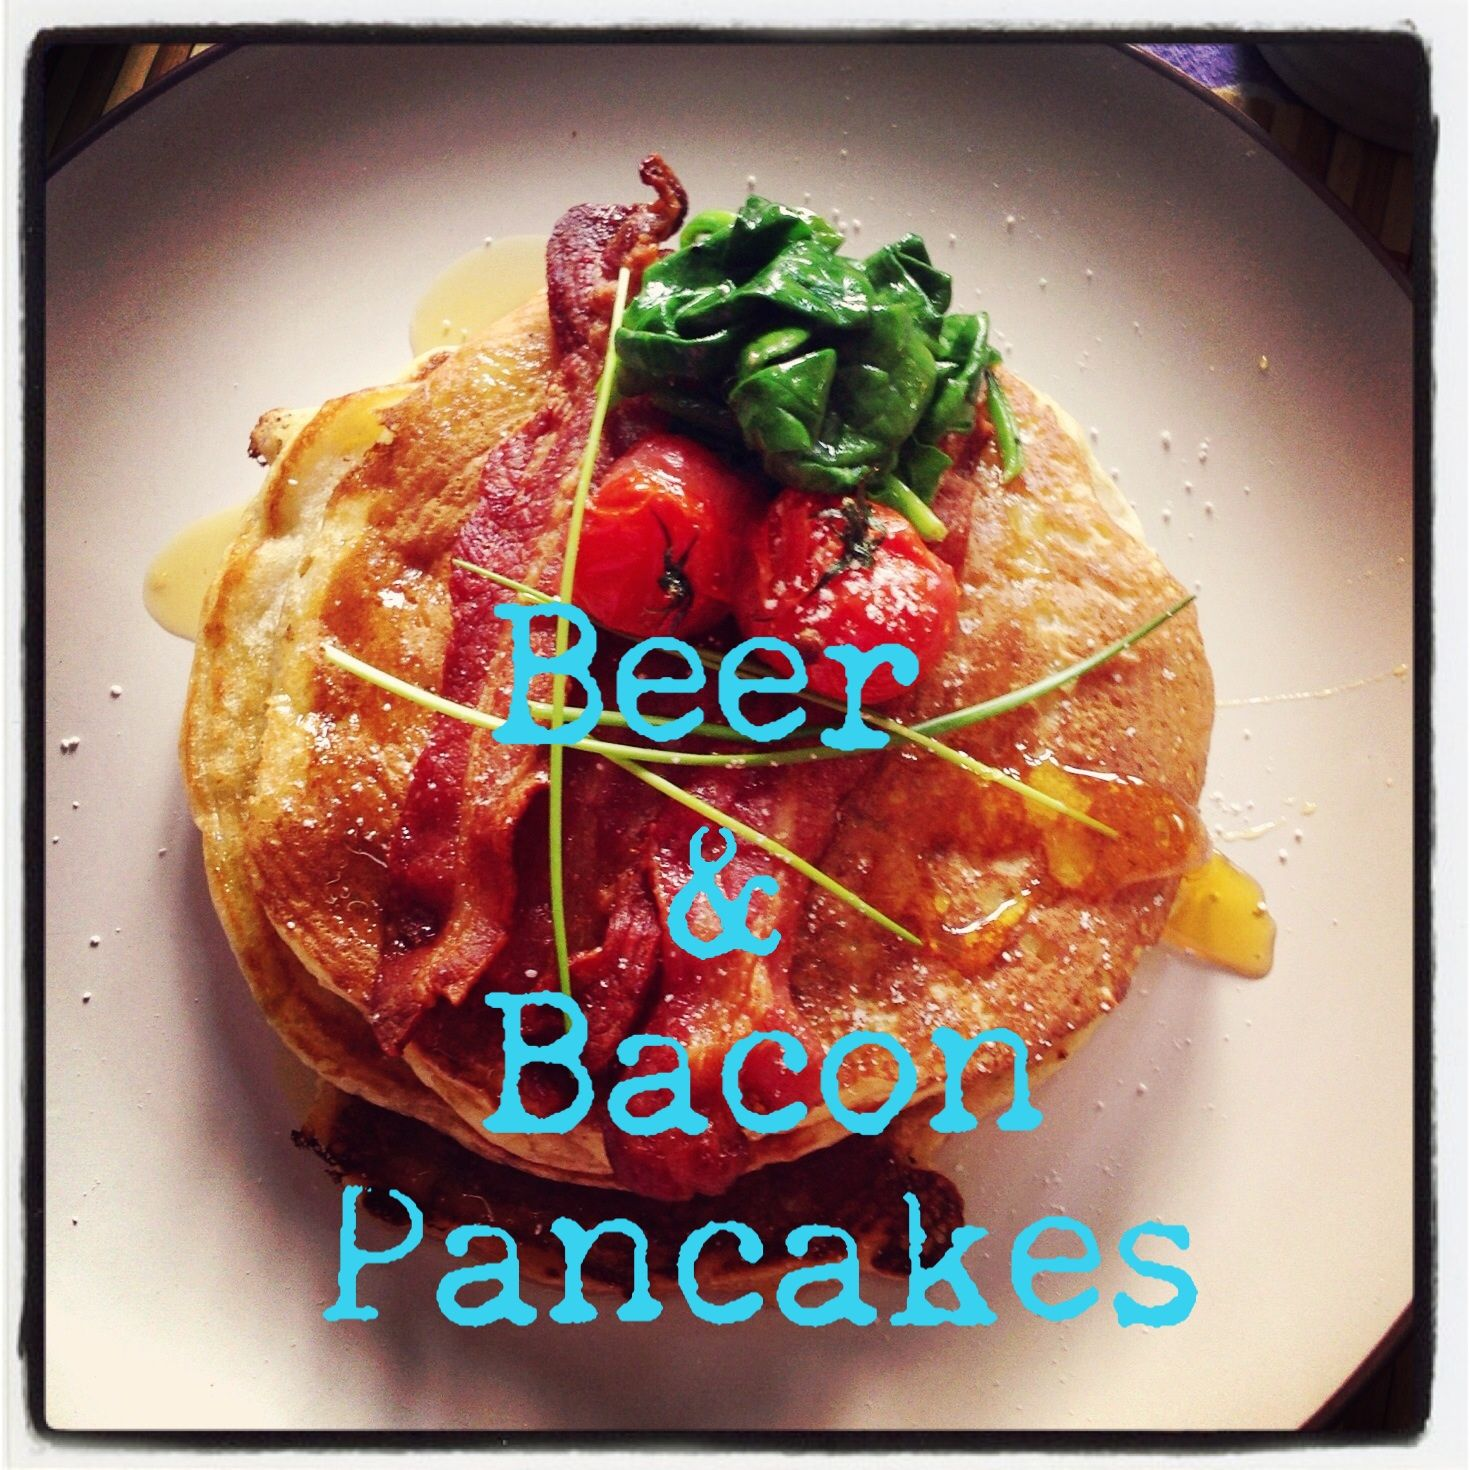 Beer and Bacon pancakes!!